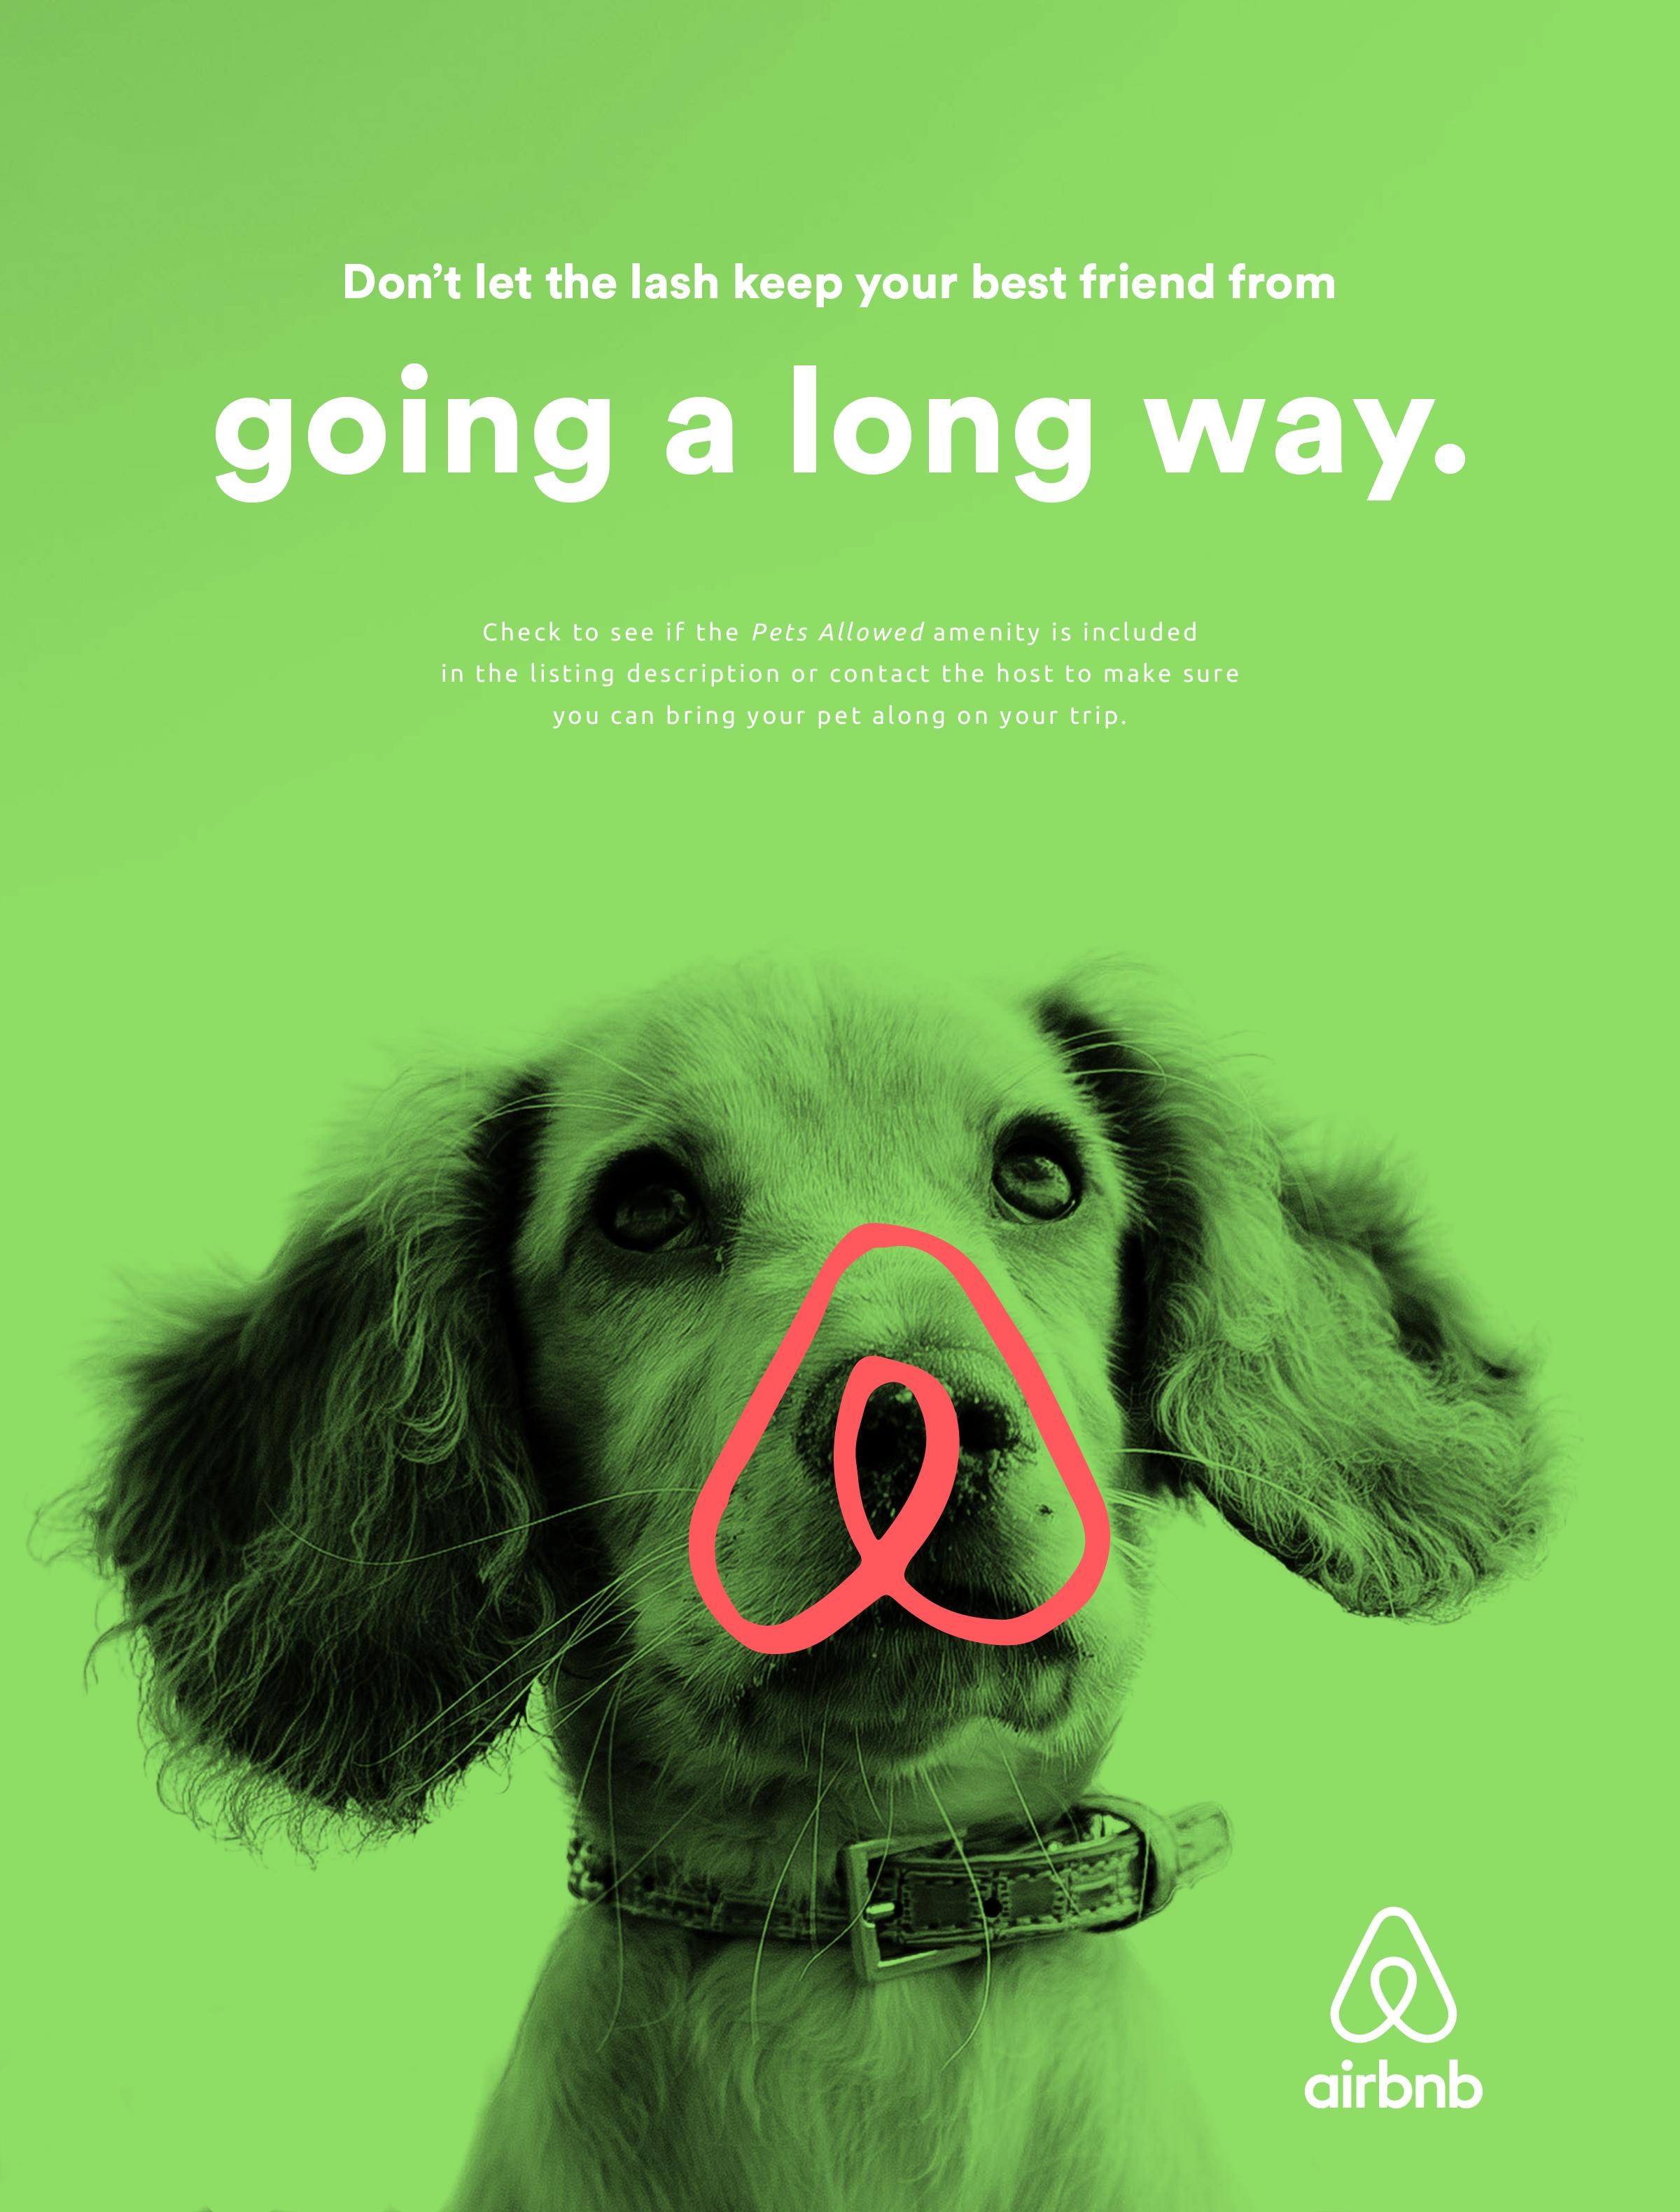 Airbnb Outdoor Ad - Best Friend, 3